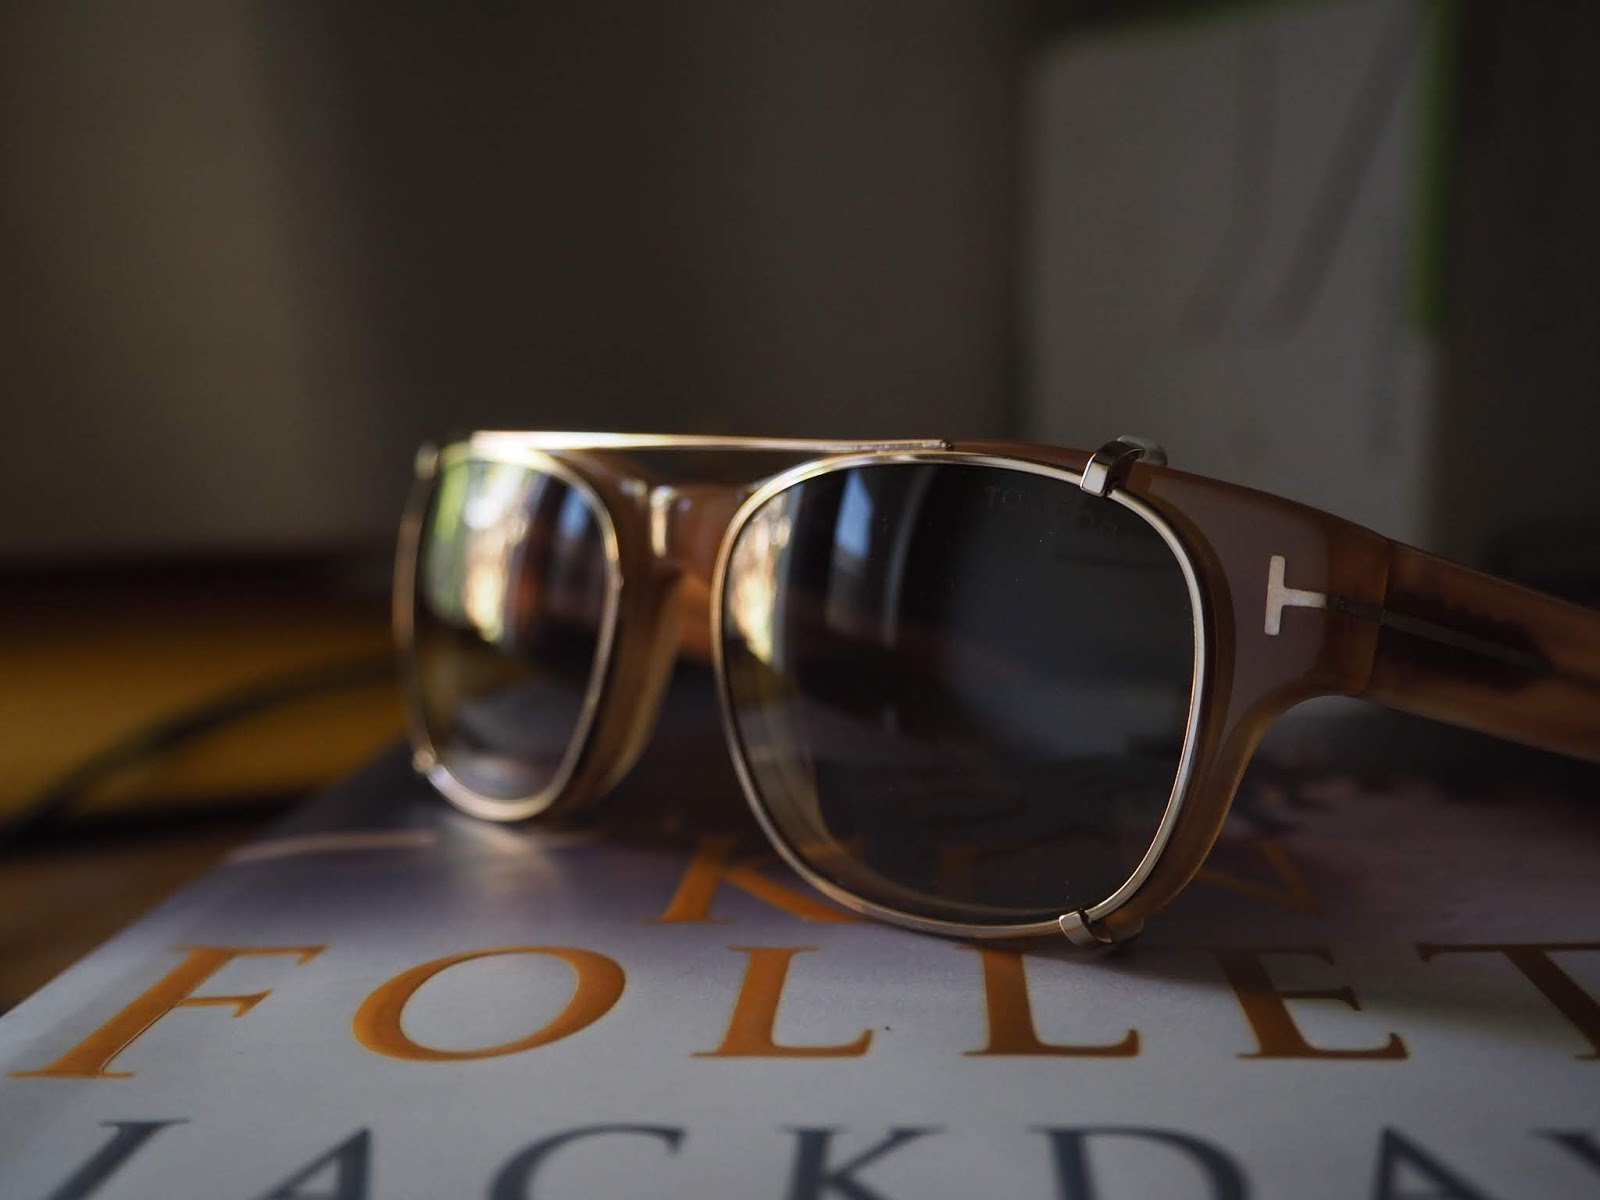 78cc7f08ee1 I had multi-focal lenses fitted to these Tom Ford frames a couple of weeks  ago. I had been on the hunt for a set of frames which had clip-on sun-glass  ...